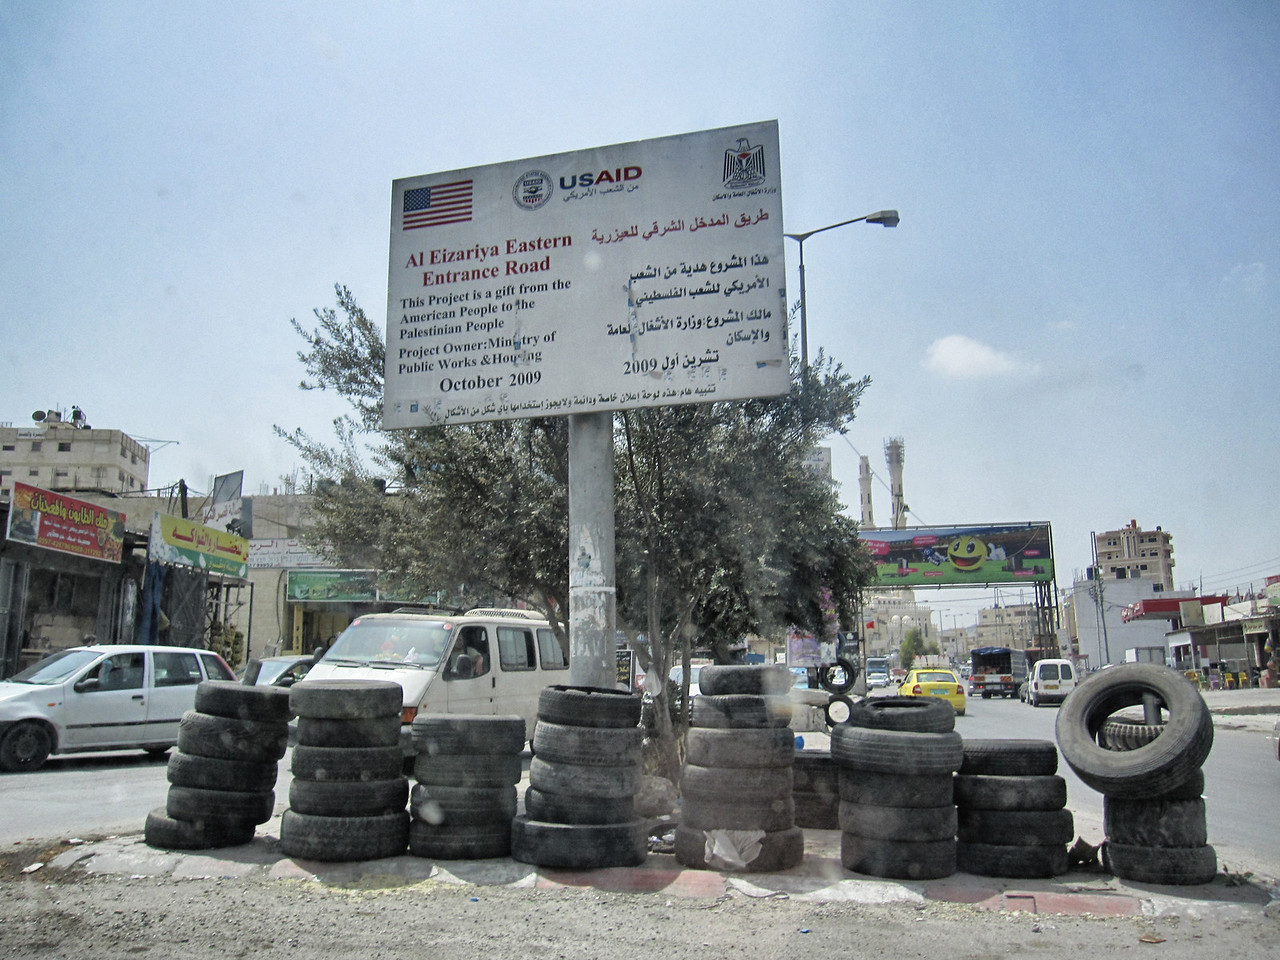 USAID sign, we paid for the entrance road into Ramallah, Palestine